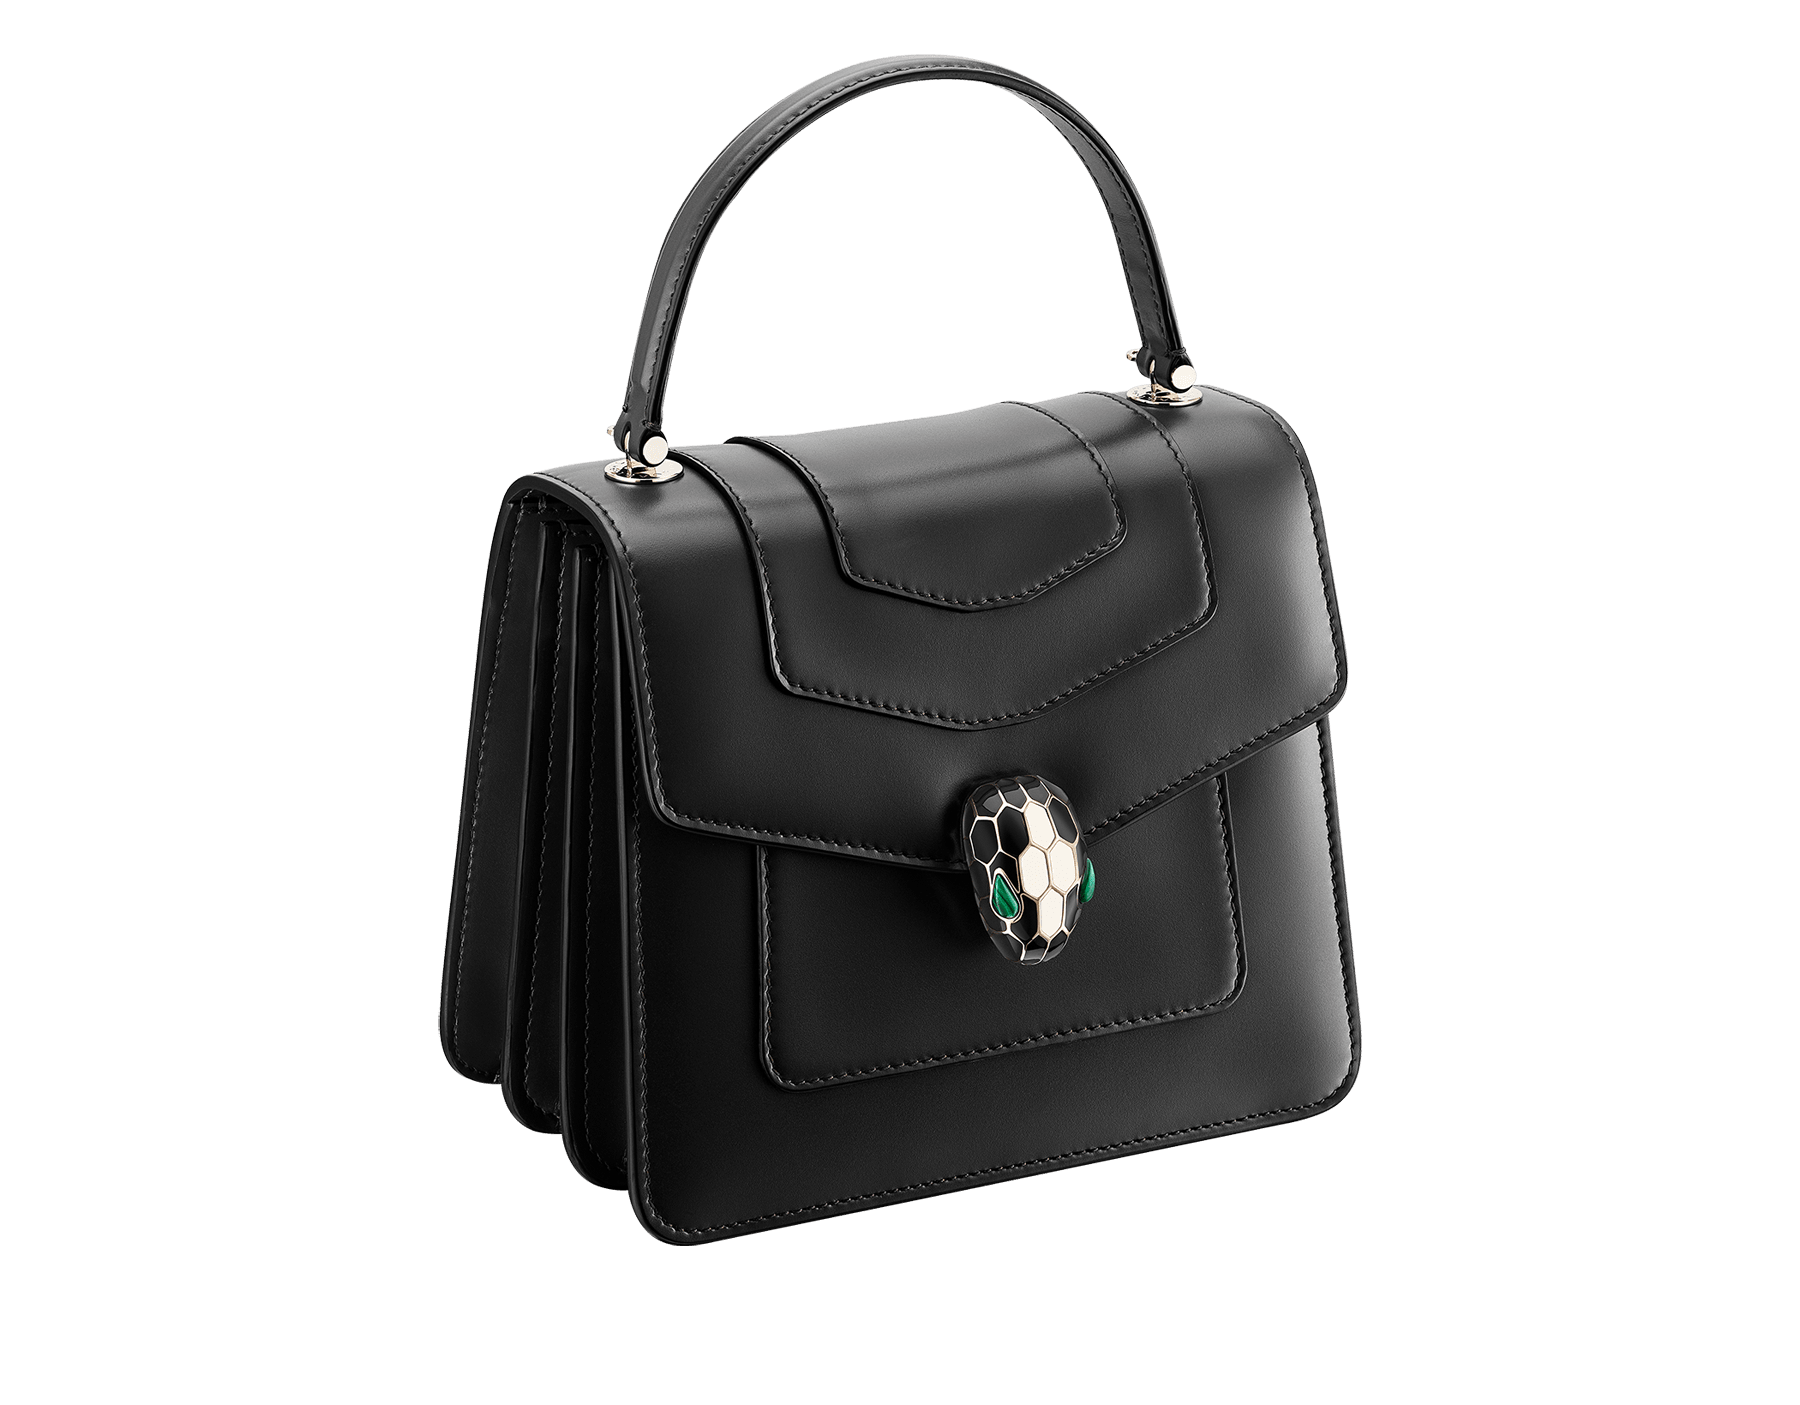 """""""Serpenti Forever"""" top-handle bag in black calfskin with emerald-green grosgrain inner lining. Iconic snakehead closure in light gold-plated brass embellished with black and agate-white enamel and green malachite eyes 1122-CLa image 2"""